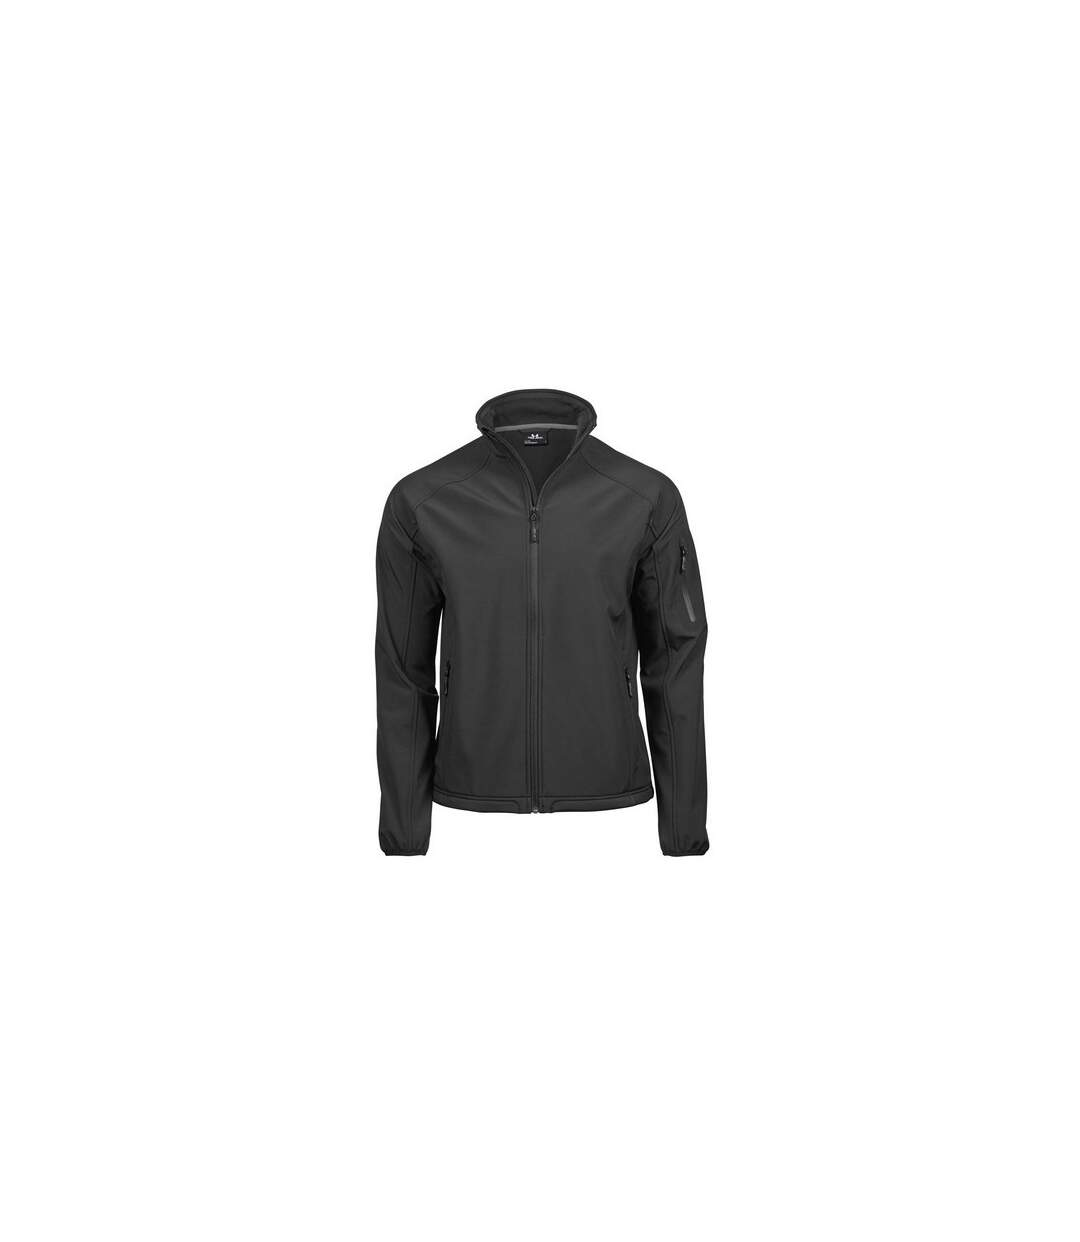 Tee Jays Mens Performance Softshell Jacket (Black) - UTBC3326